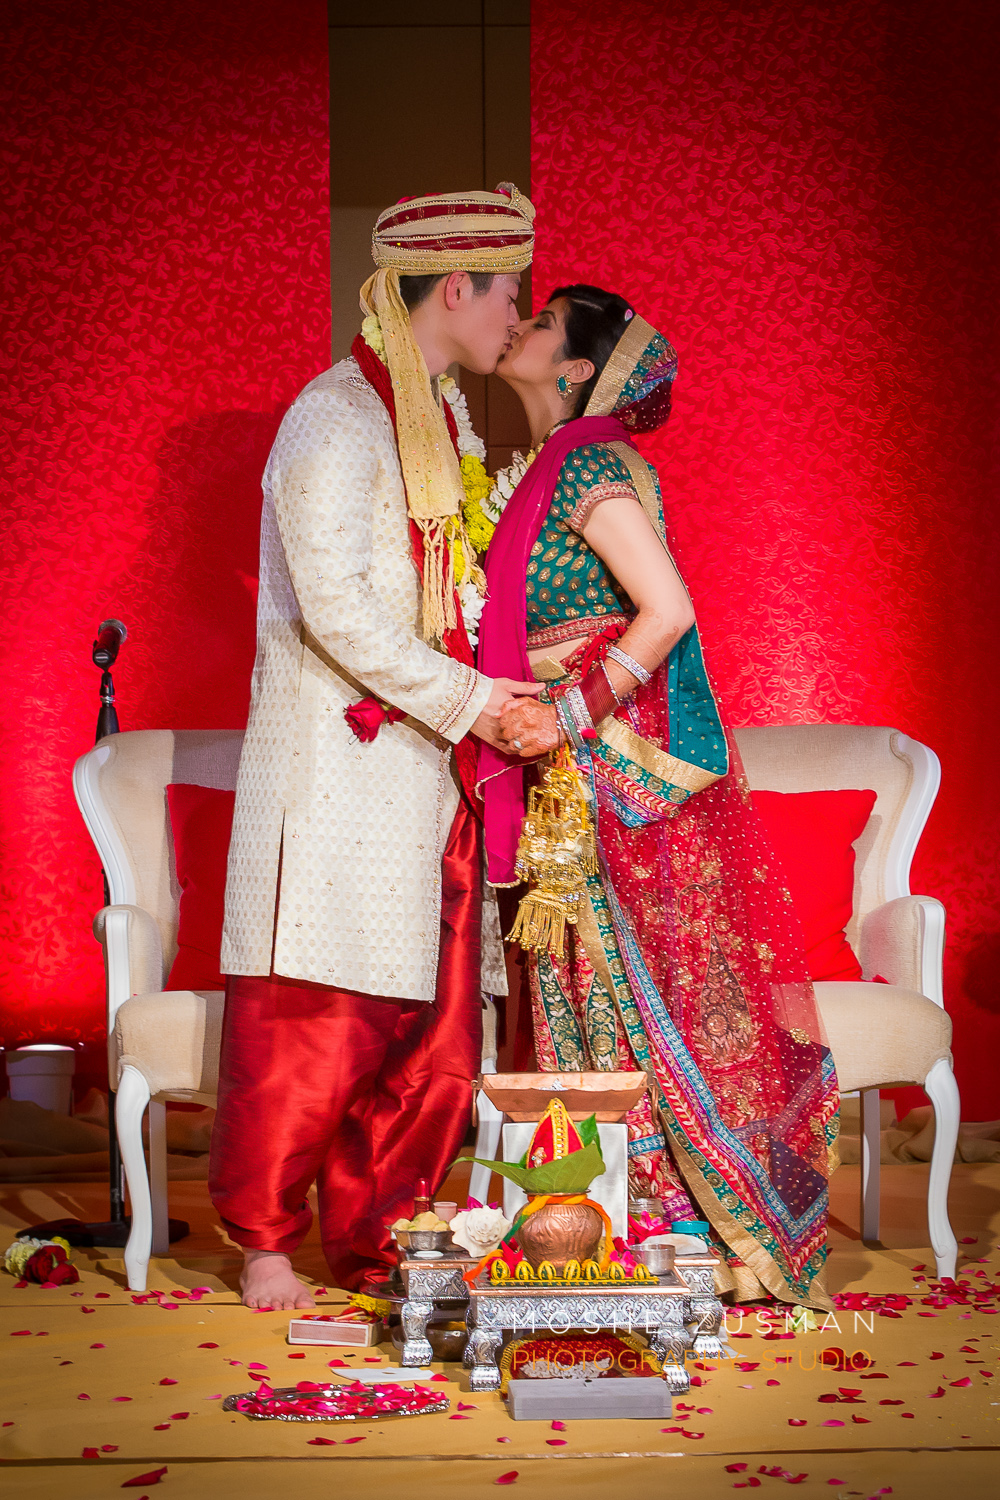 Indian_Wedding_Photography_Moshe_Zusman_Mandarin_Oriental_DC_Naina_Chris-41.jpg